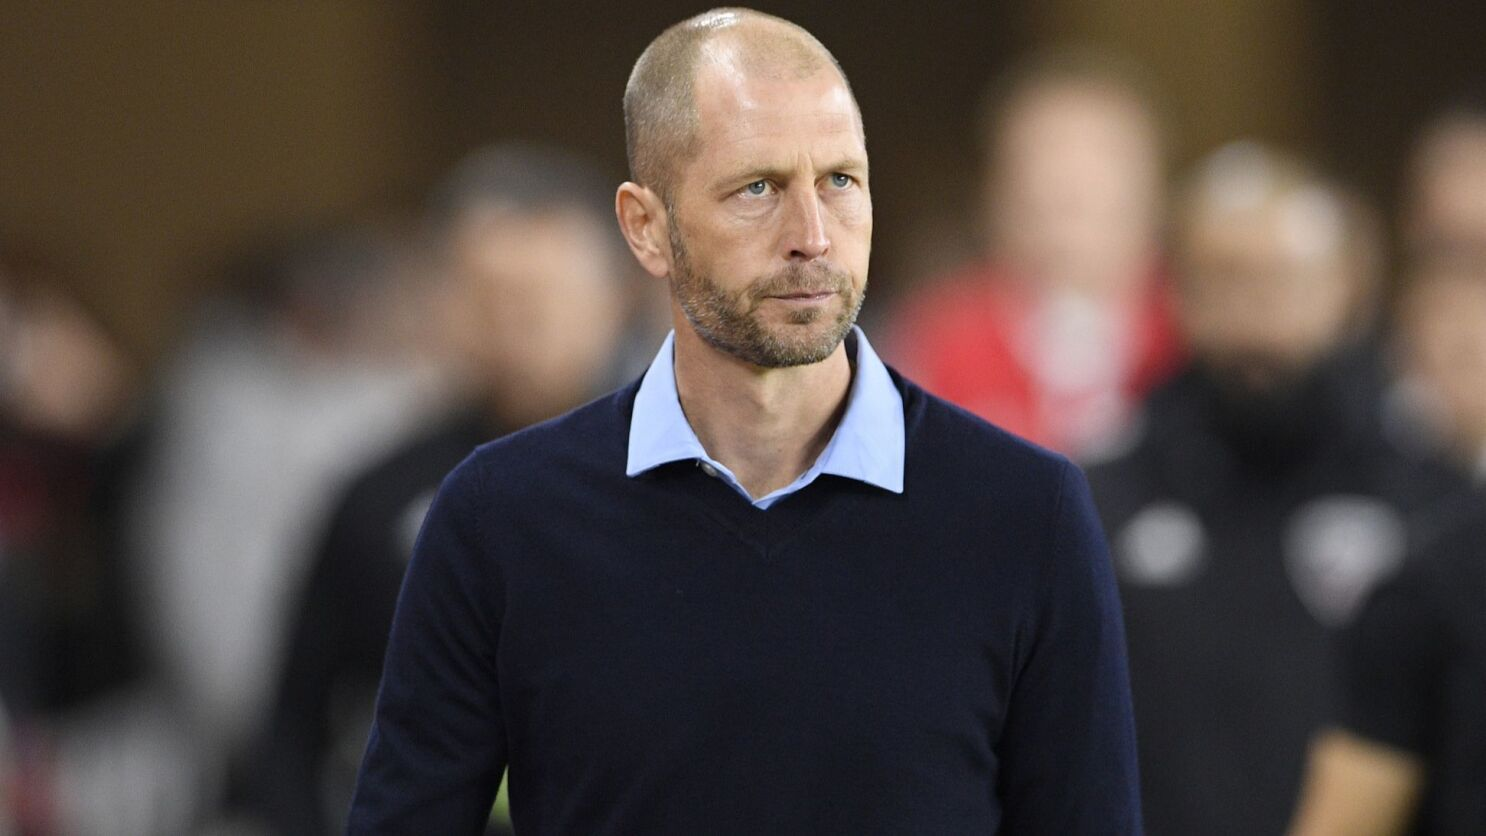 U.S. Soccer gets its man in new coach Gregg Berhalter - Los Angeles Times